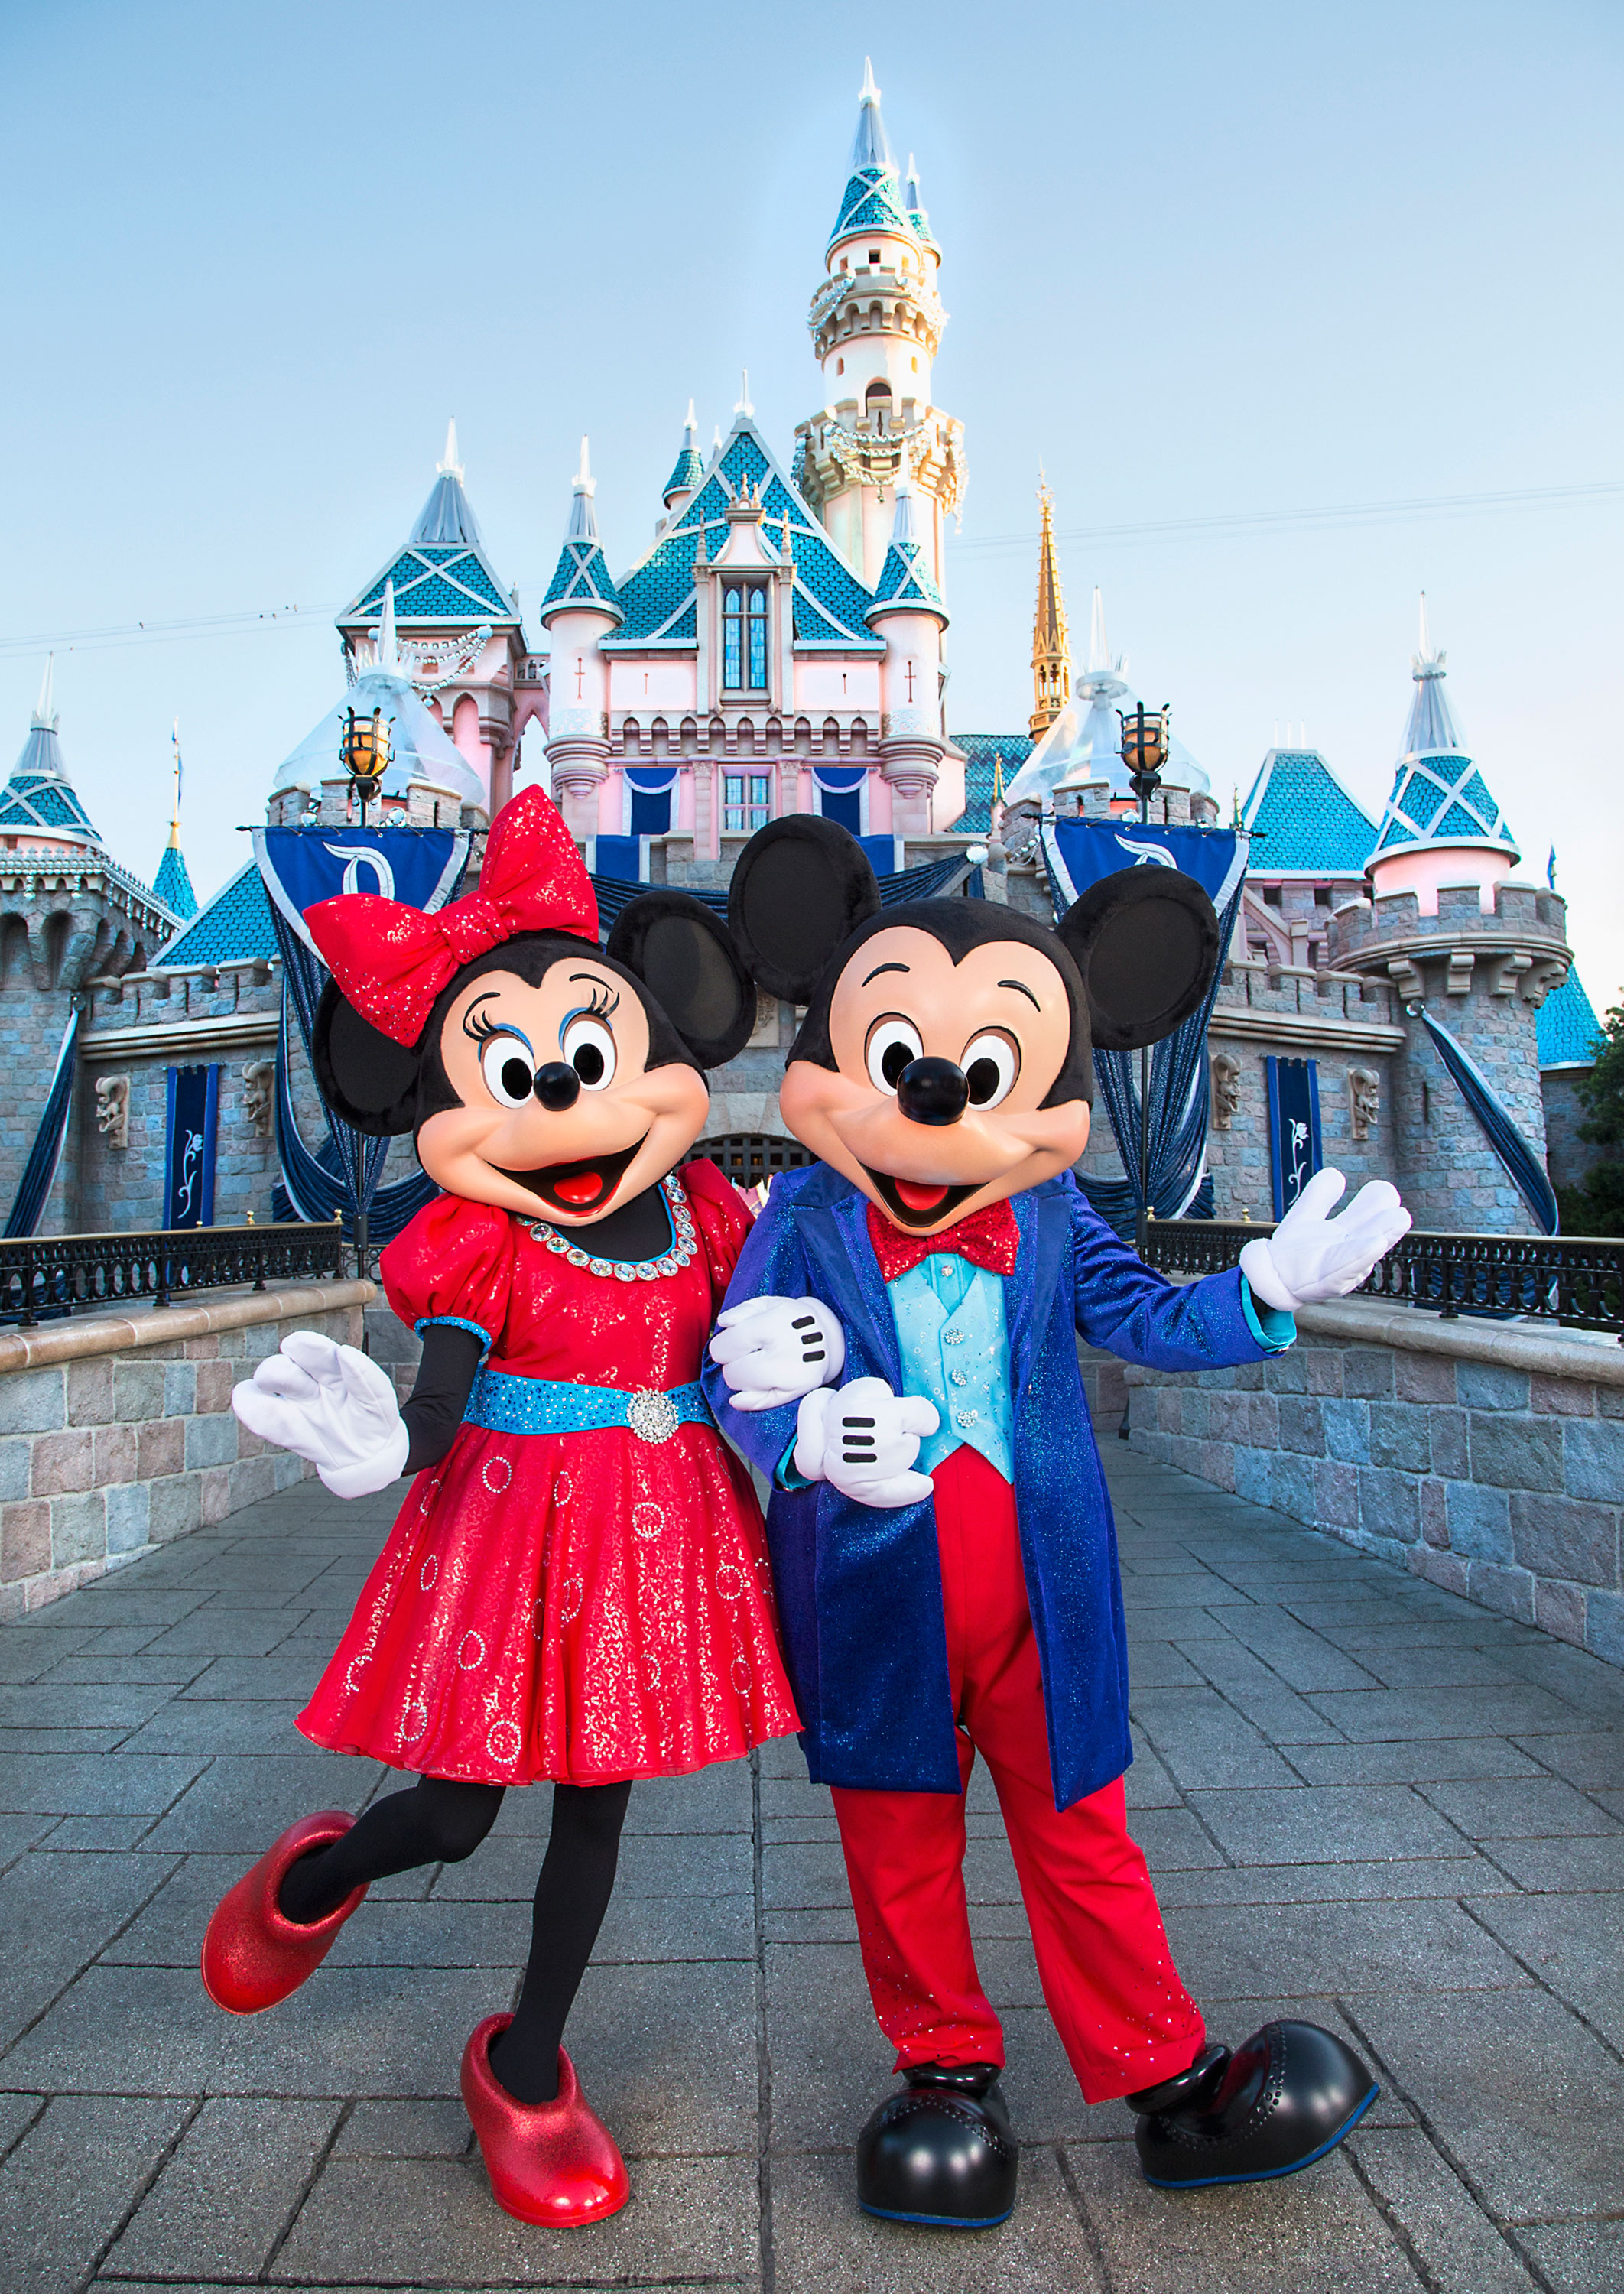 8 Disneyland Tips for Your Best-Ever Visit